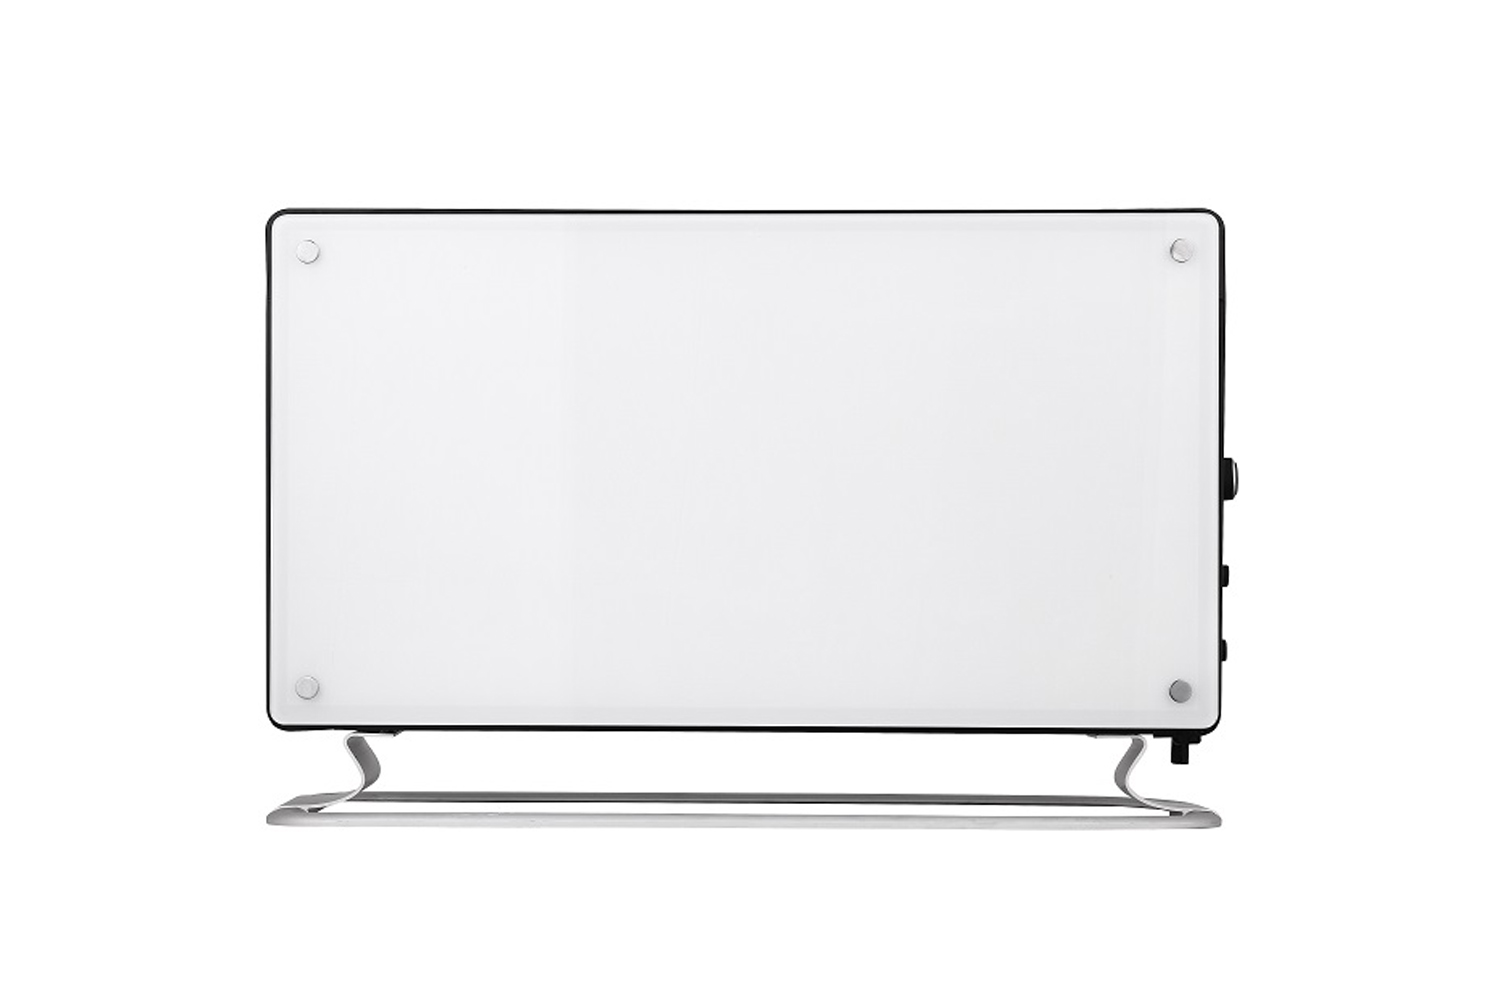 Mill SG2000 Glass convection heater front view